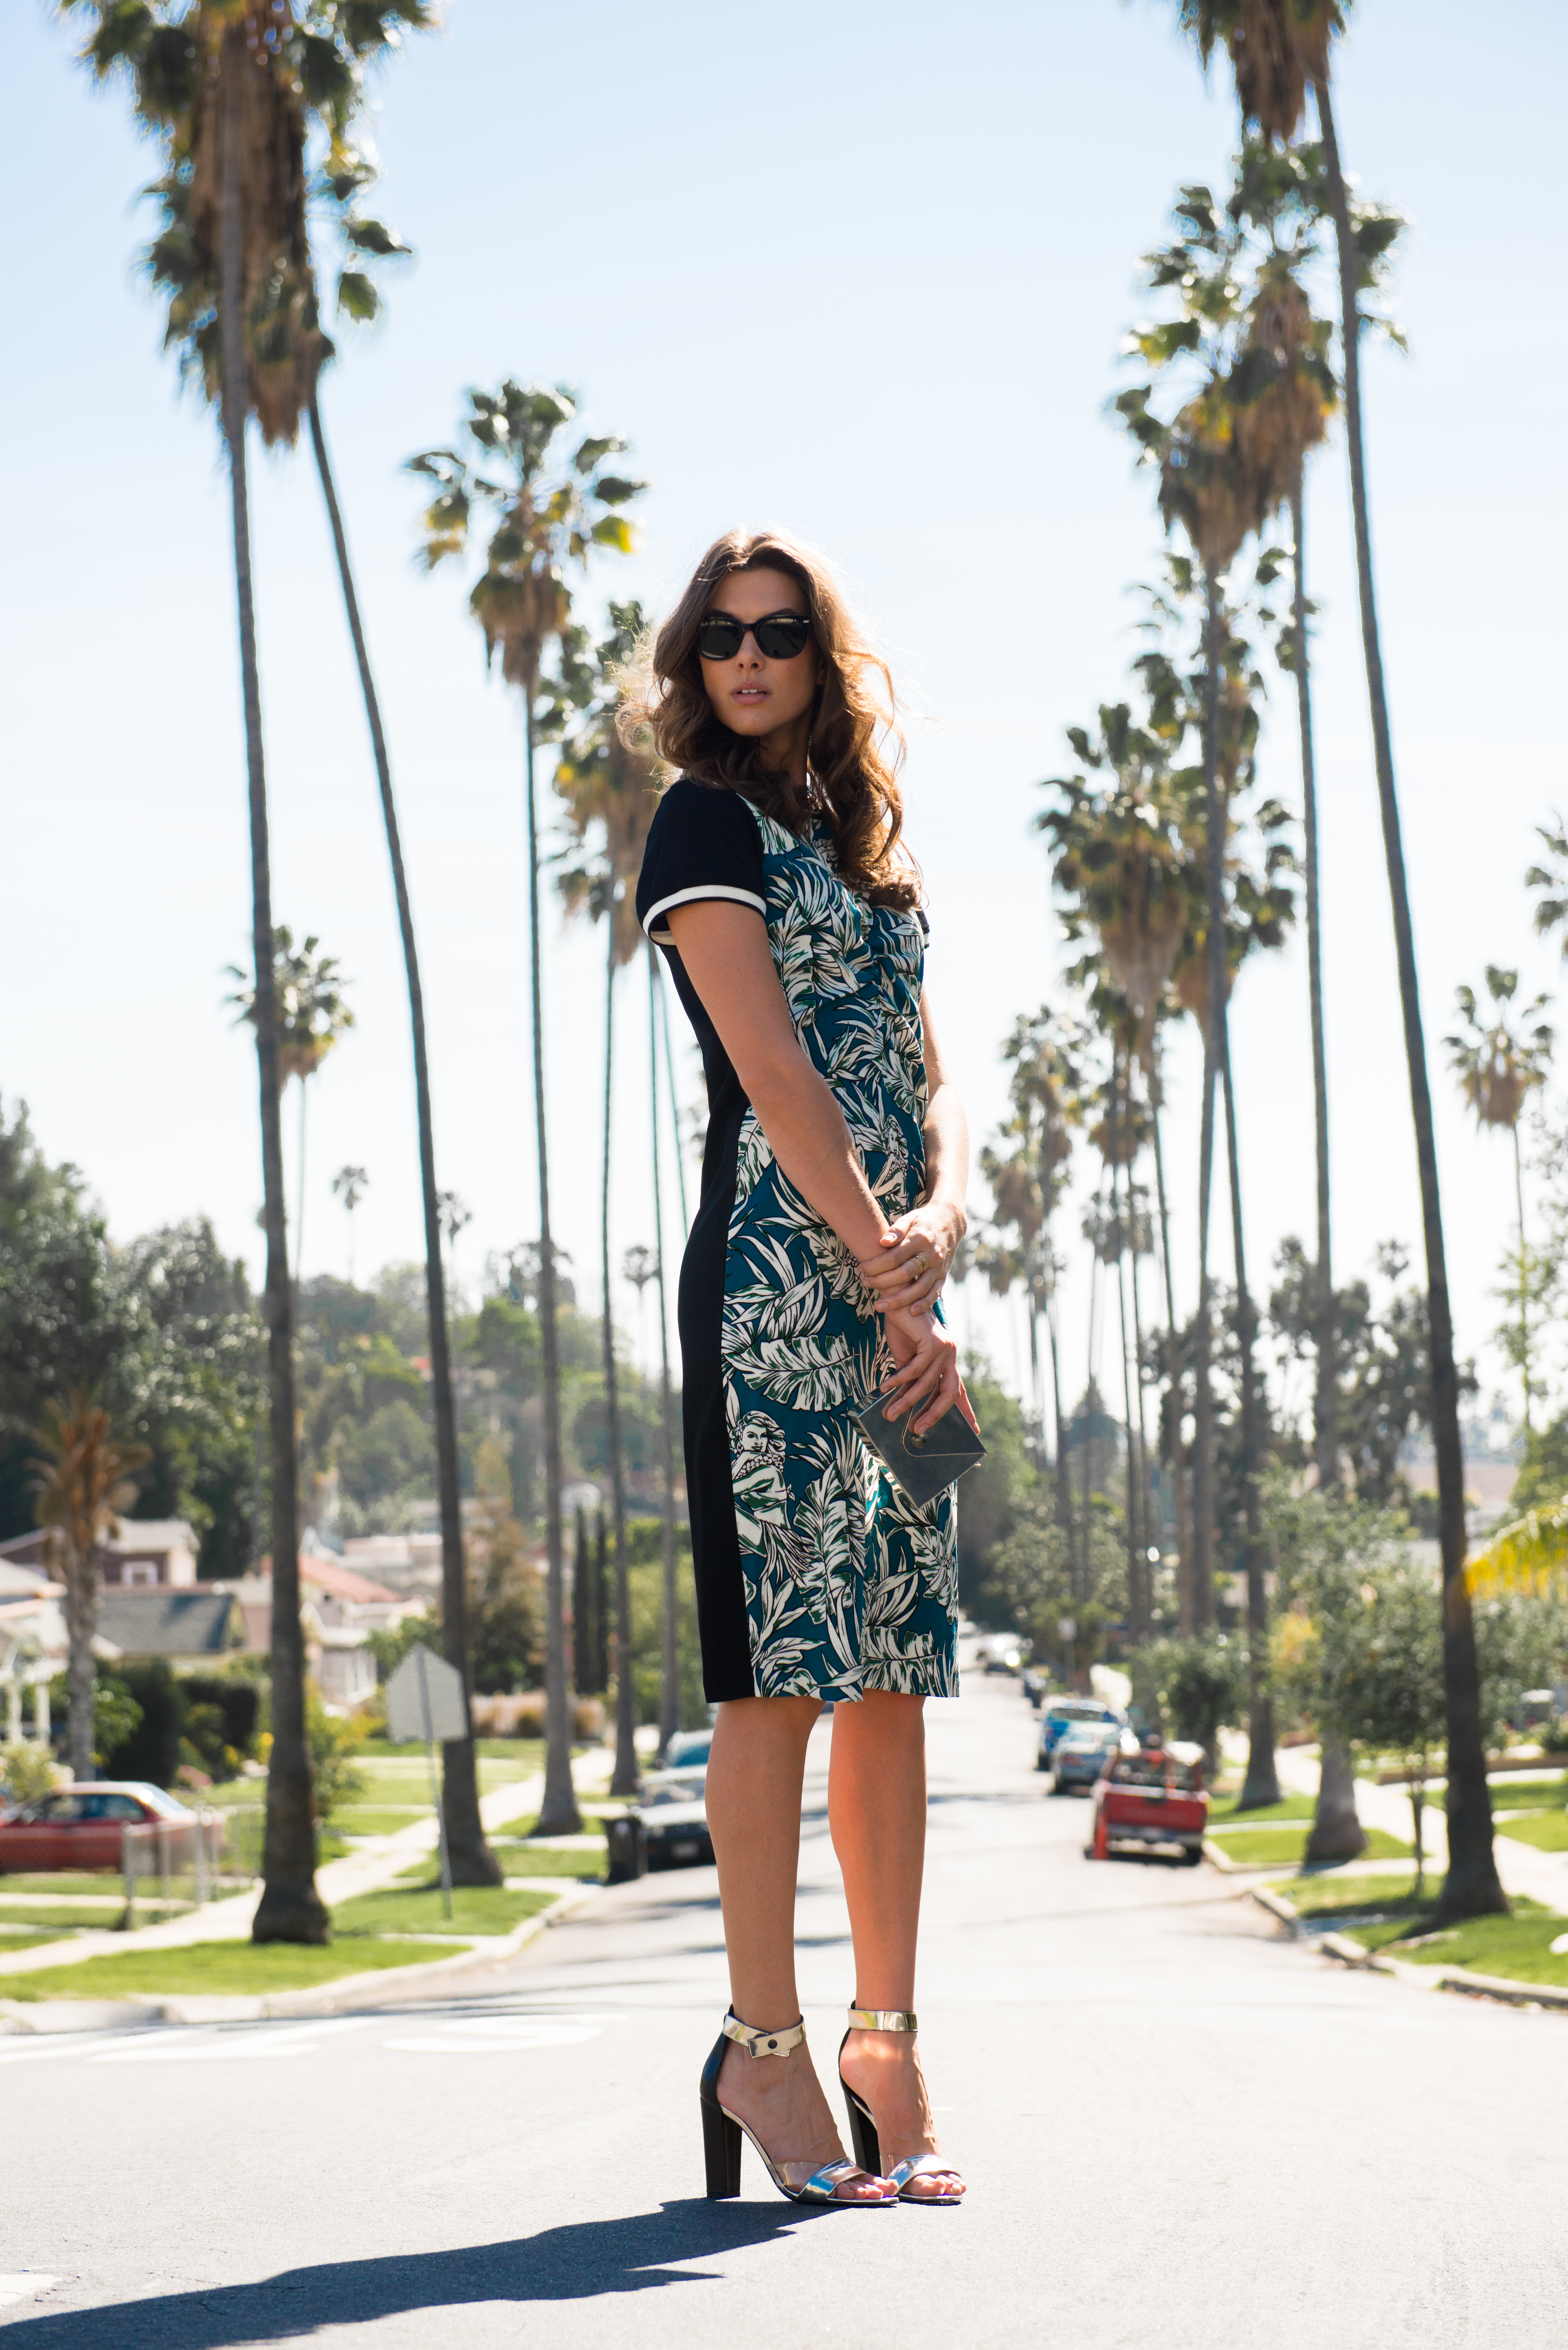 1c4ab90b905e Tropical prints are huge for spring and of course Zara is all over the  trend! I'm obsessed with this Hawaiian print dress. I love its  sophisticated length ...